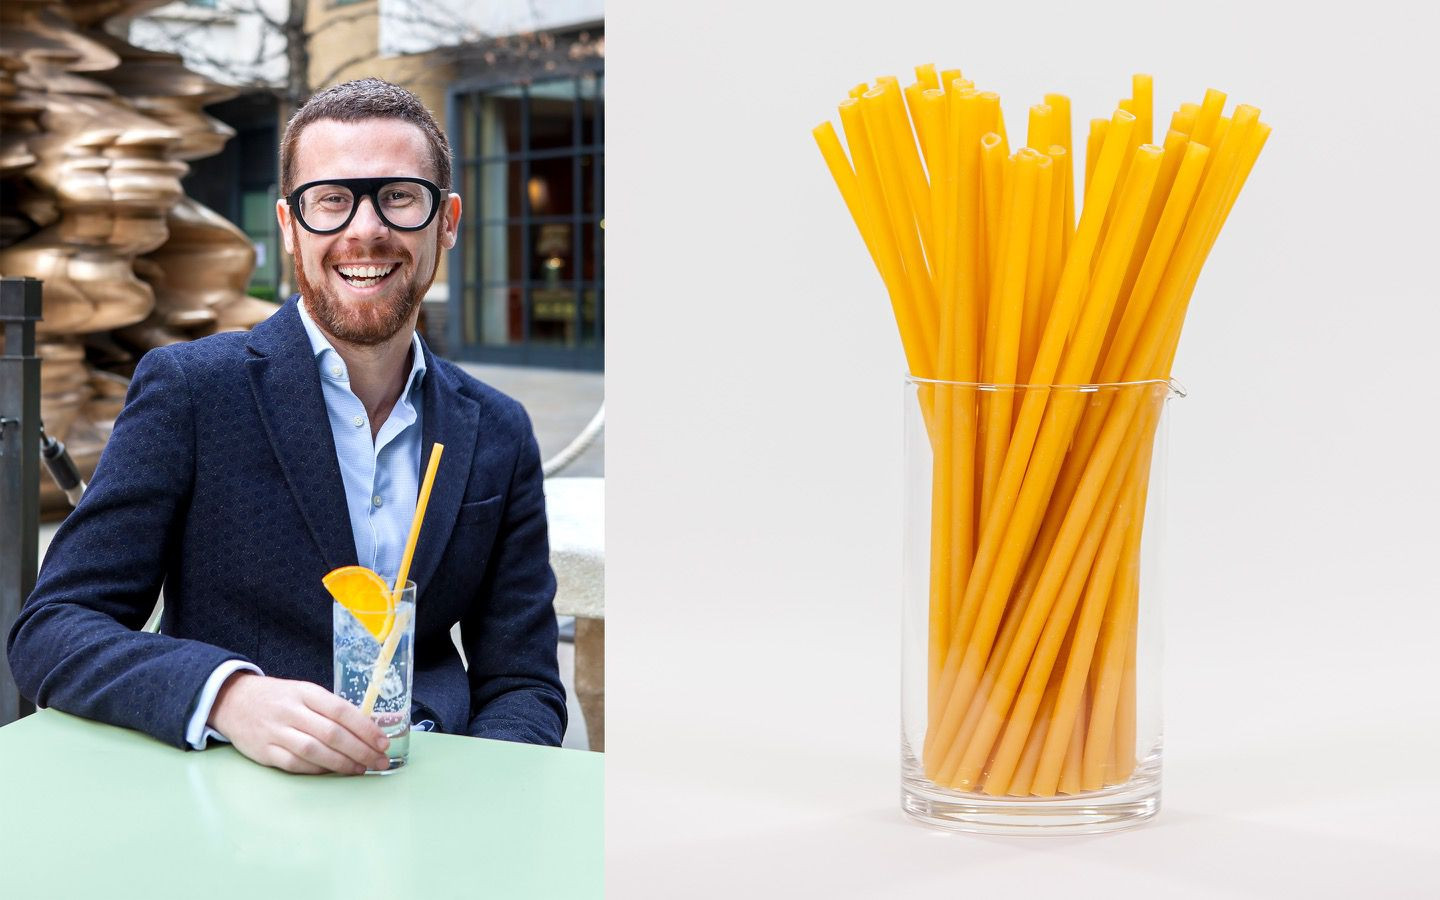 Stroodles - The Pasta Straws